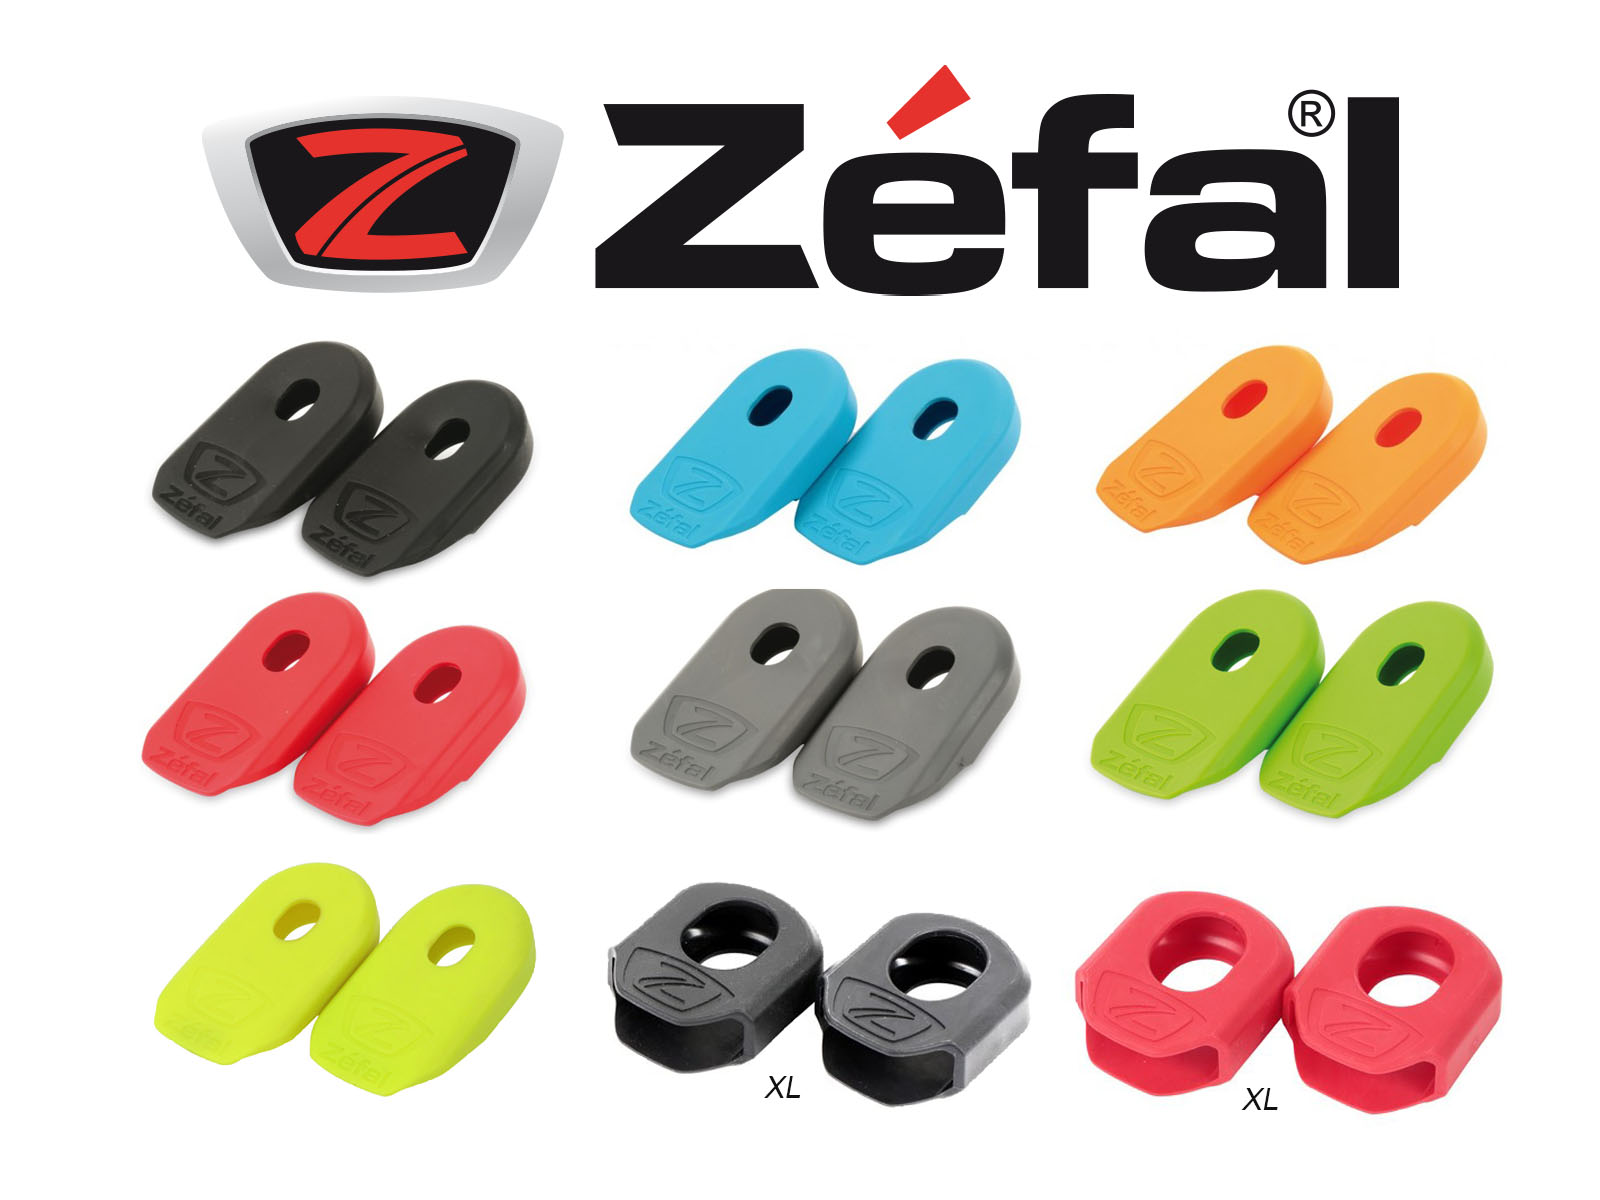 2x ZEFAL UNIVERSAL BLUE CRANK ARMOR ARM BOOT BIKE COVER PROTECTION PEDAL PAIR